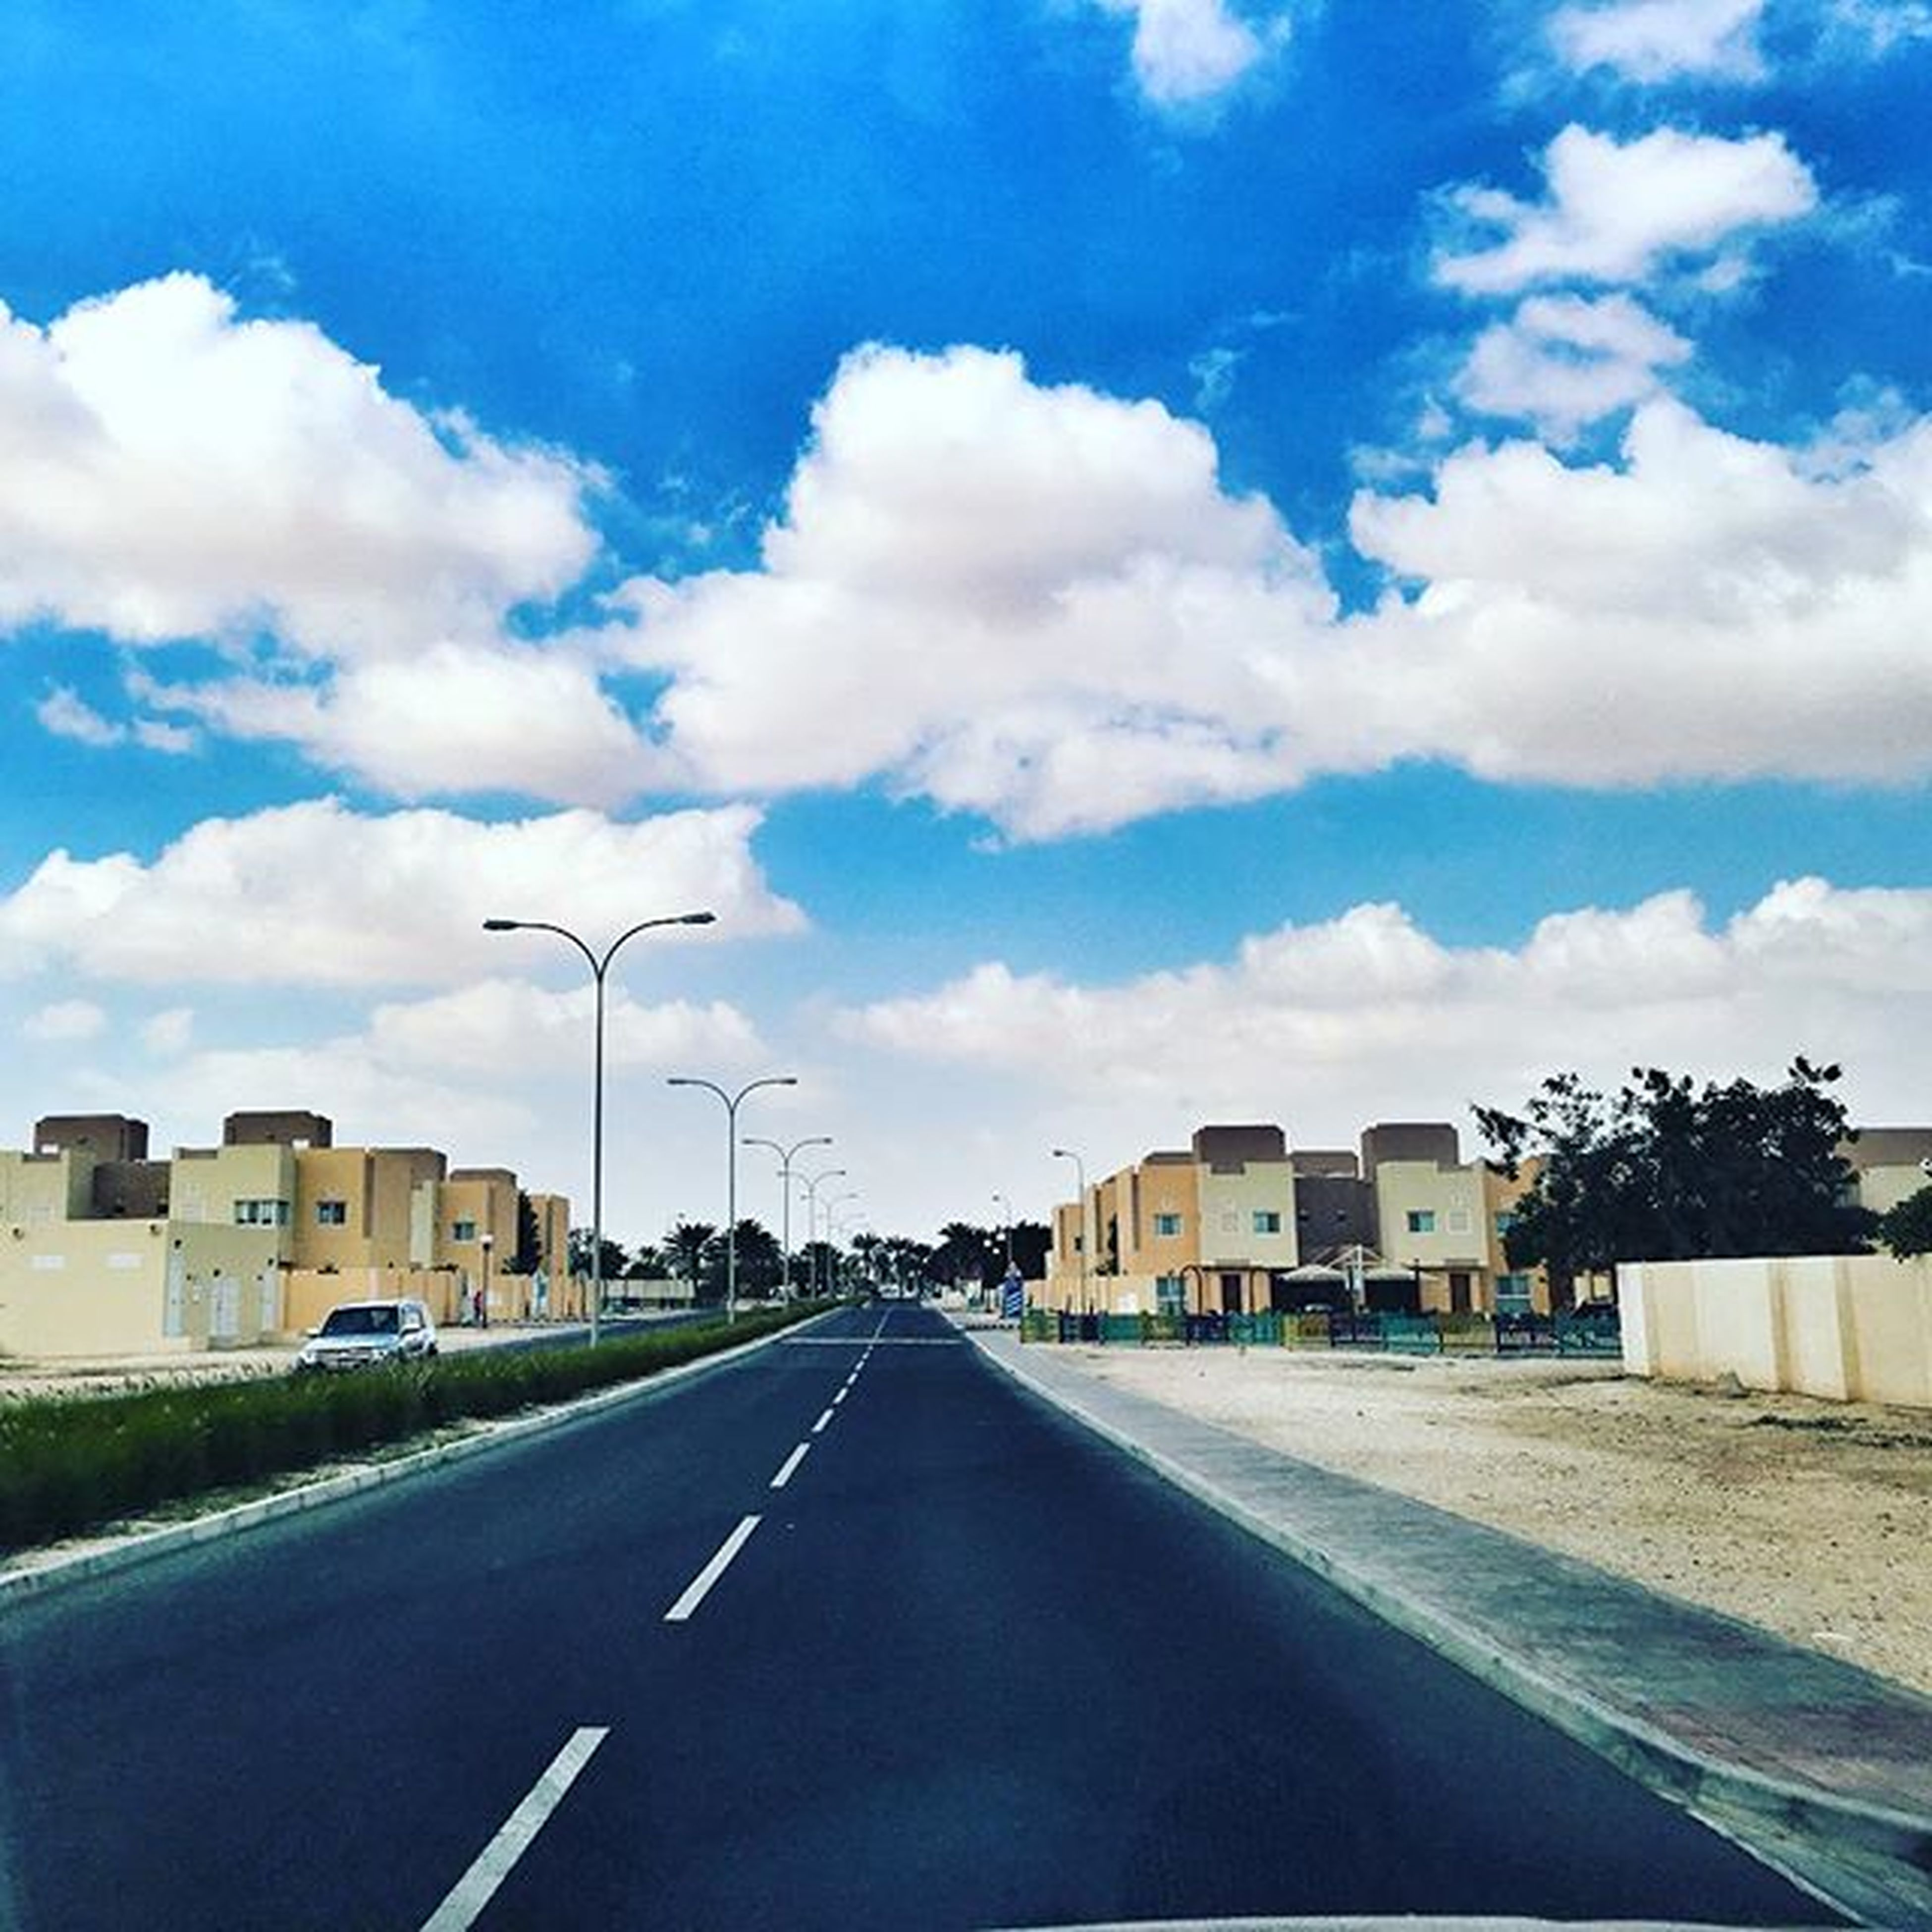 transportation, the way forward, road, sky, road marking, building exterior, diminishing perspective, built structure, vanishing point, architecture, street, cloud - sky, blue, car, cloud, mode of transport, empty, land vehicle, day, asphalt